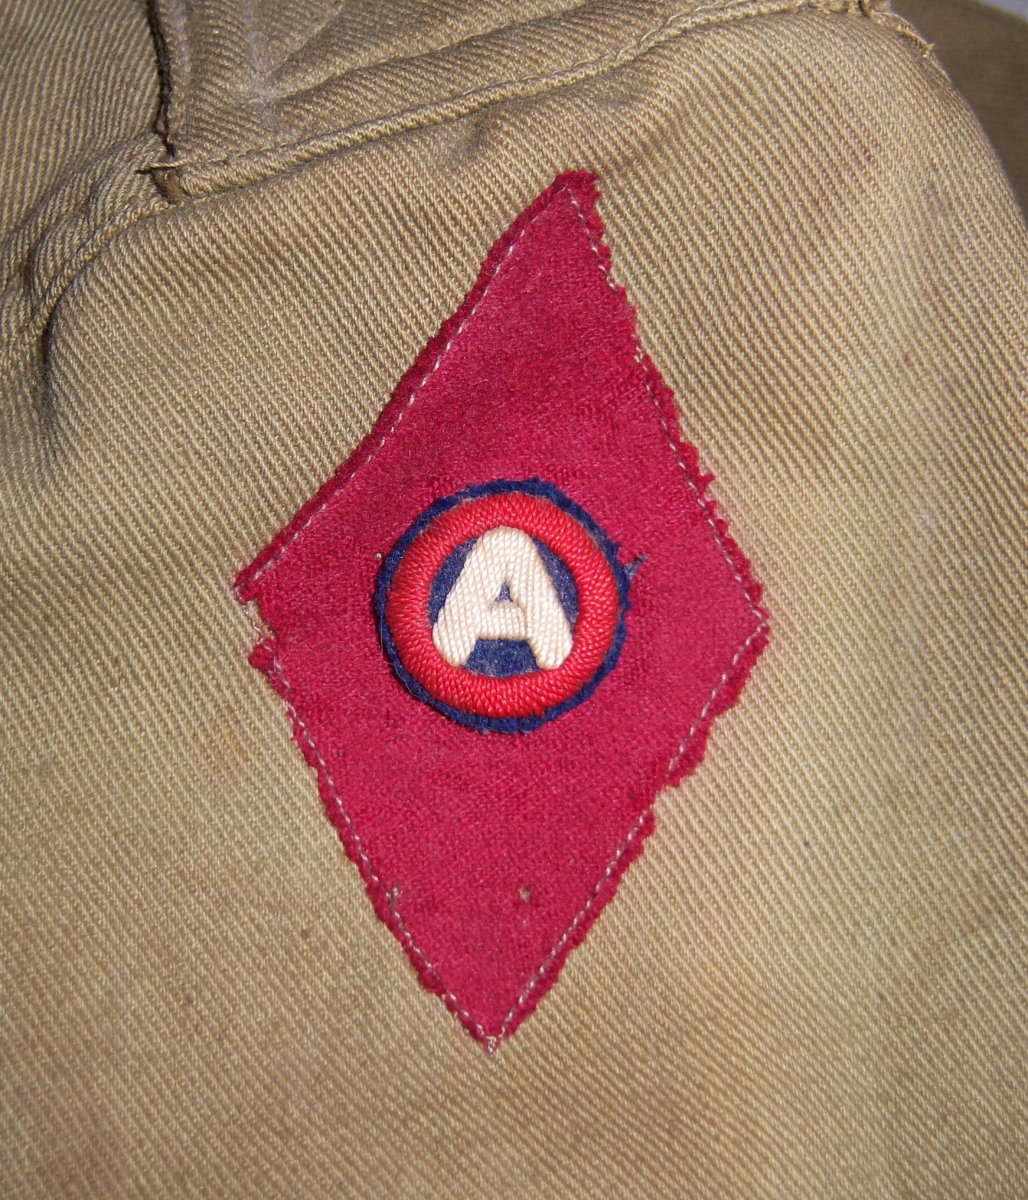 "The 5th Division, another Regular Army unit, served in the occupation of Luxembourg after the war. This 5th Division soldier has chosen to show his Third Army affiliation by placing the small patch inside his ""Red Diamond"" patch."